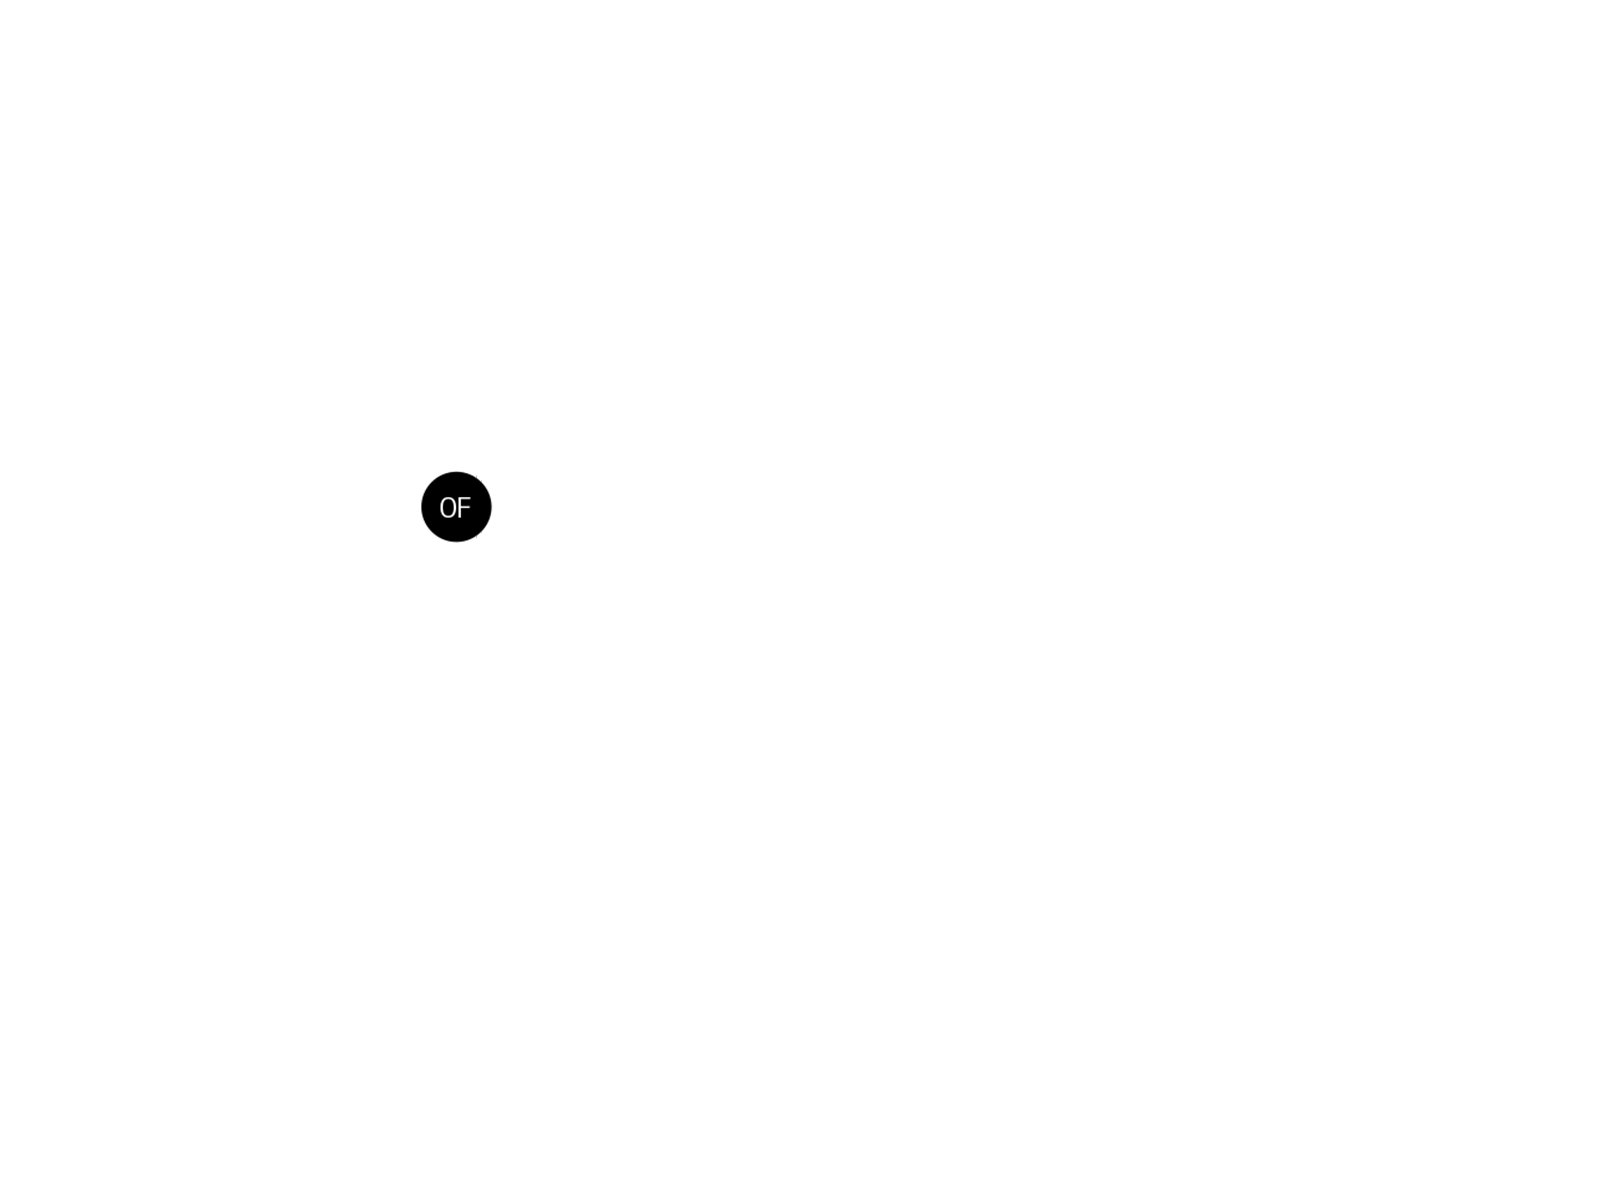 12 days of fitness: daily product giveaways and 25% off